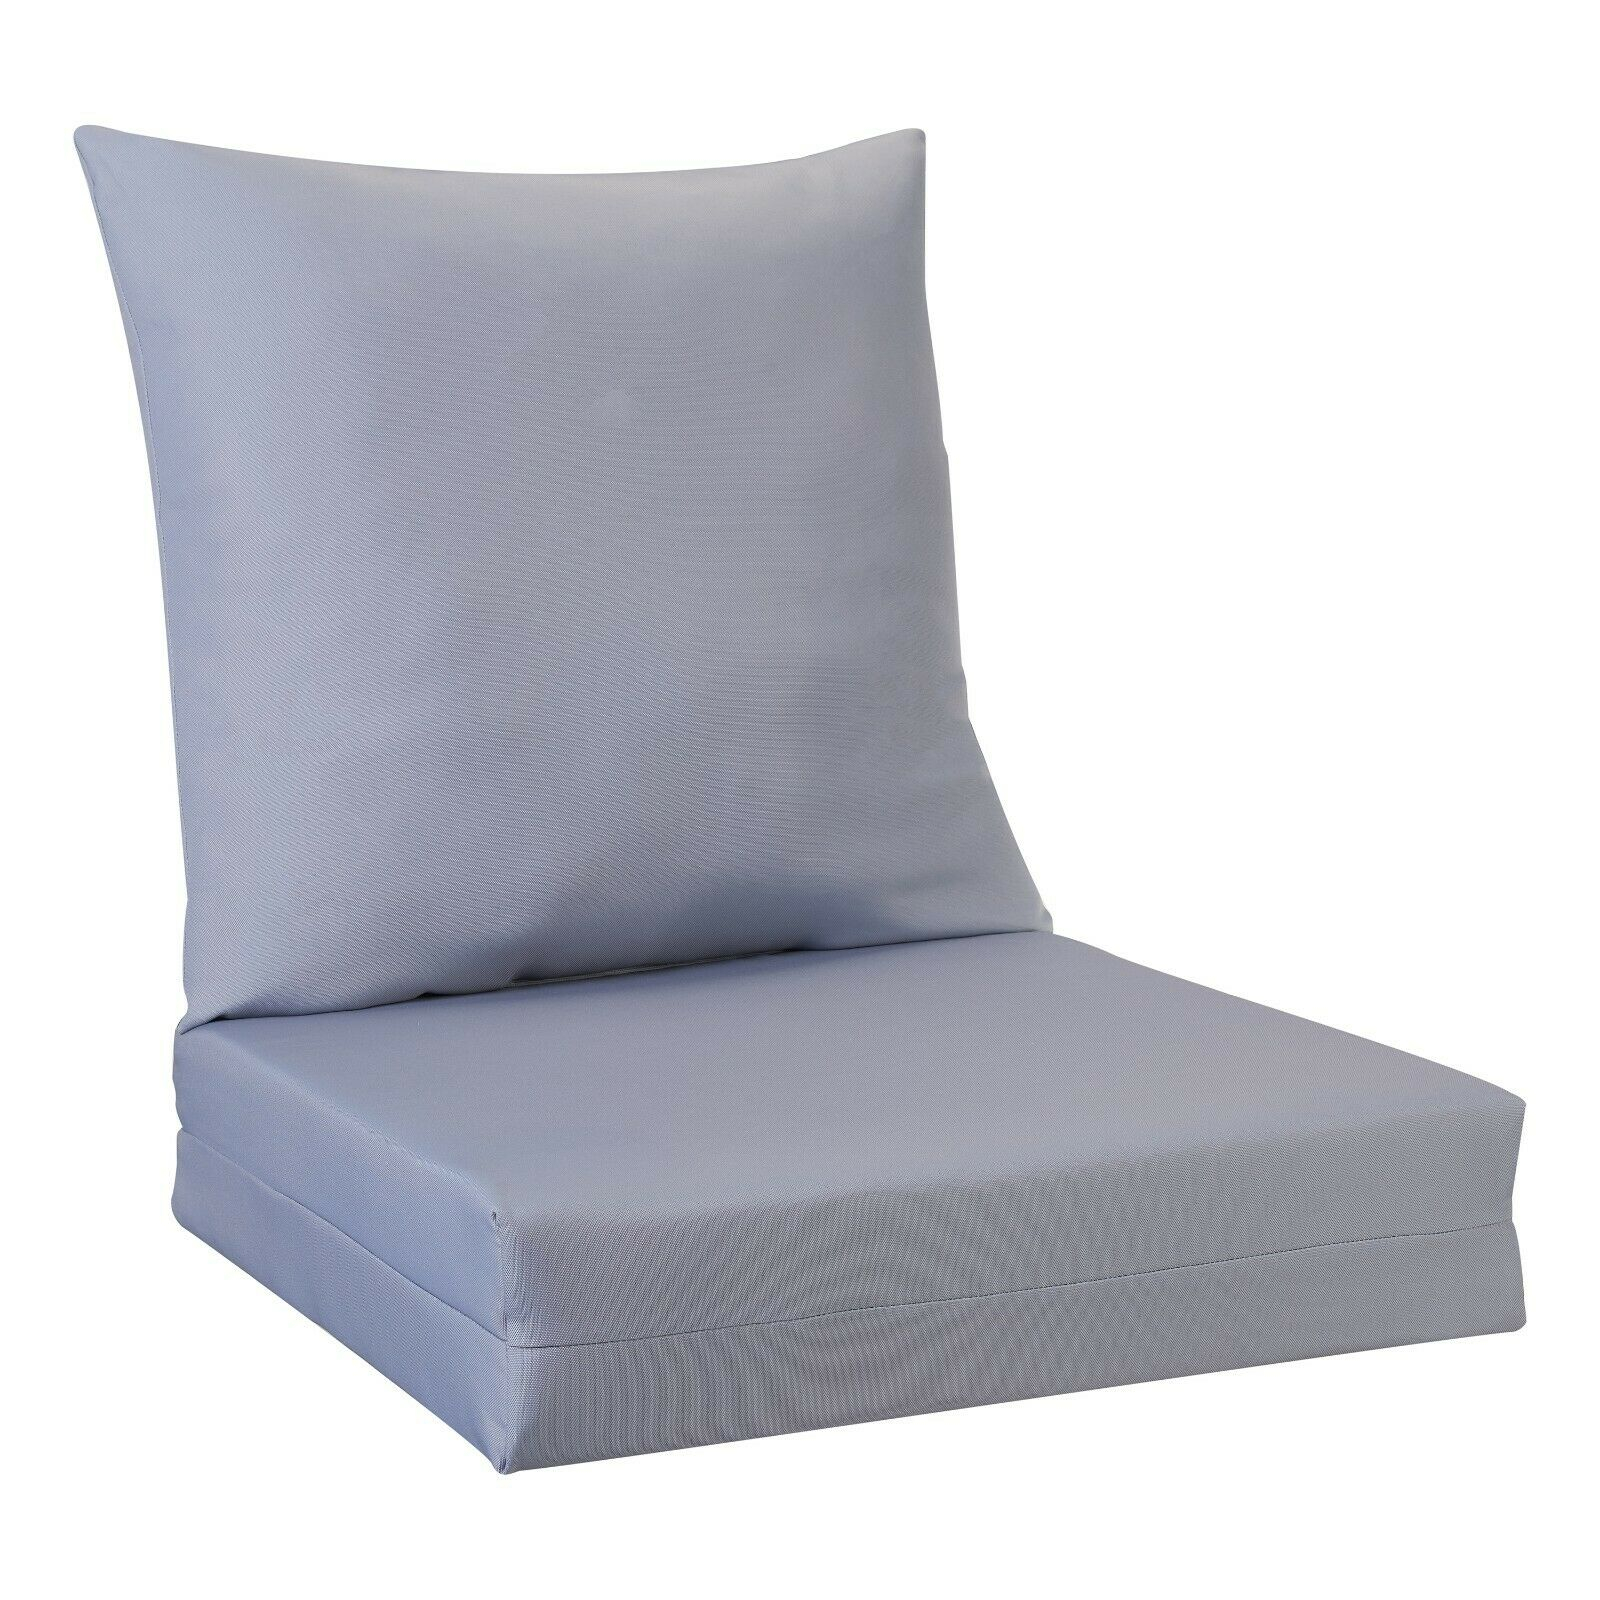 Better Homes And Gardens Solid Deep Seat Cushion Set – Grey With Regard To Cushioned Glider Benches With Cushions (View 15 of 27)